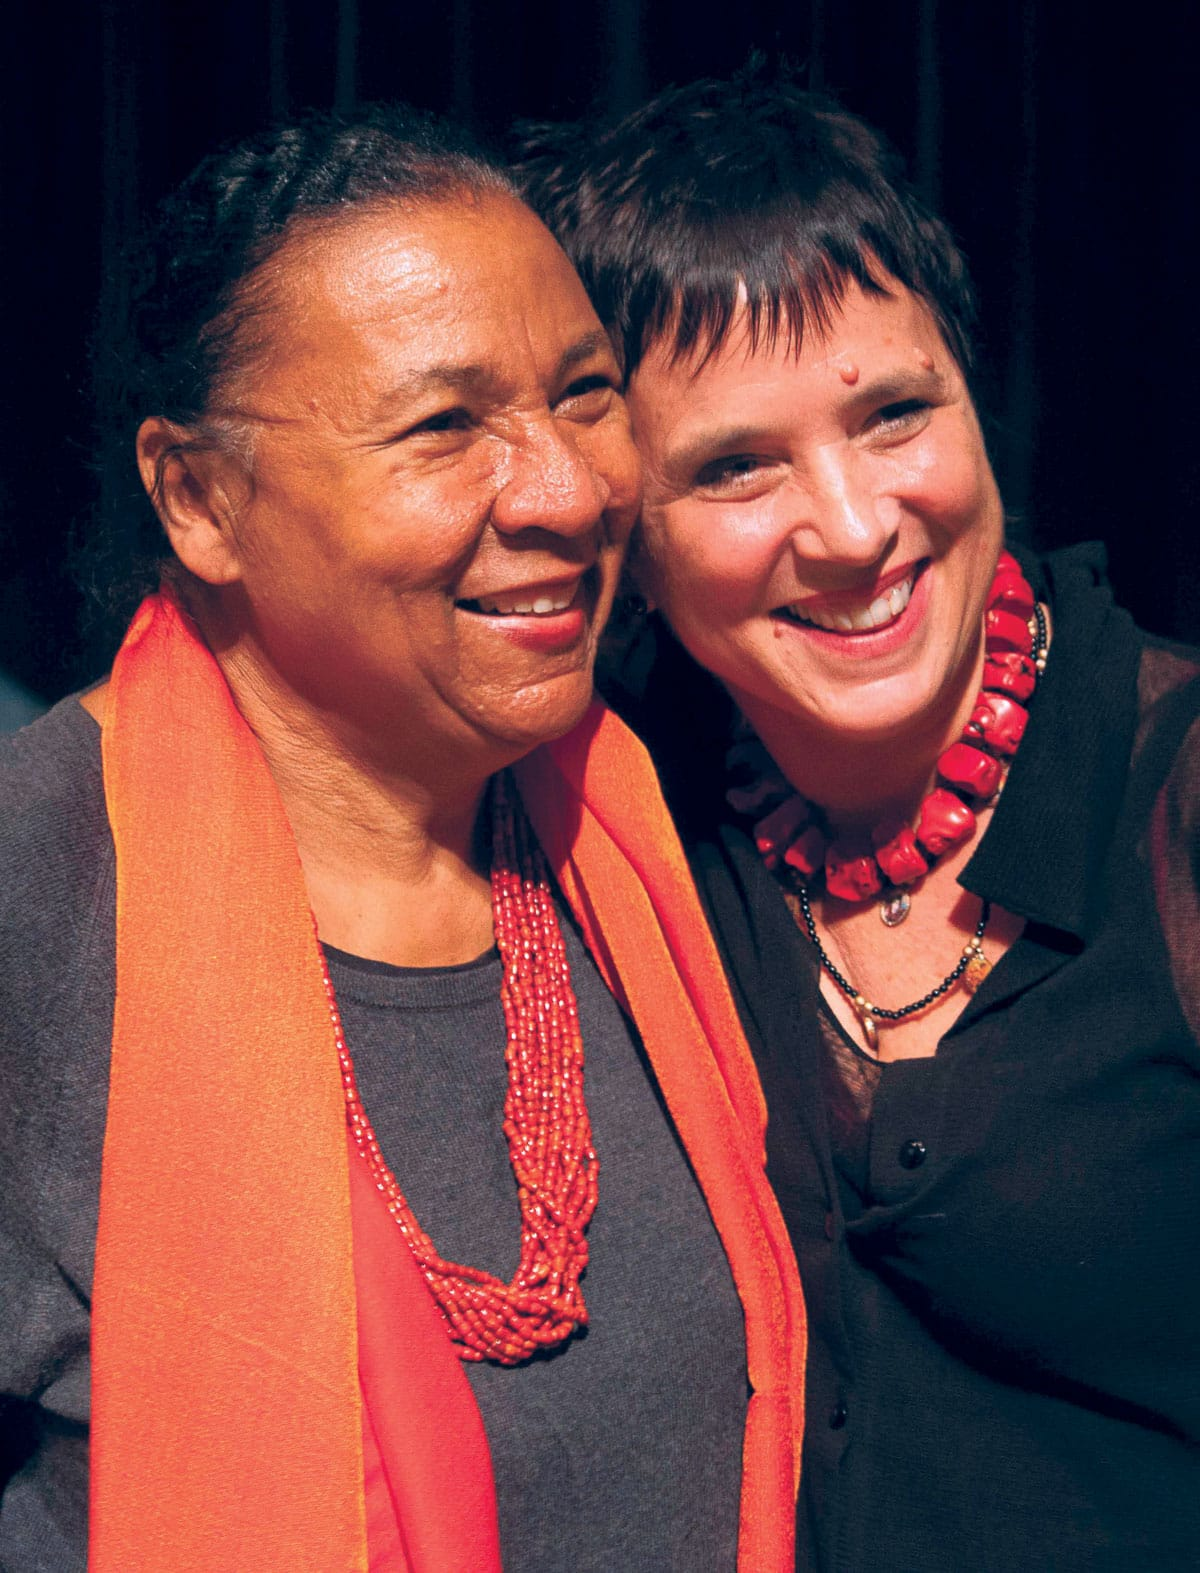 toward a worldwide culture of love bell hooks lion s roar eve ensler bell hooks feminism compassion lion s roar buddhism shambhala